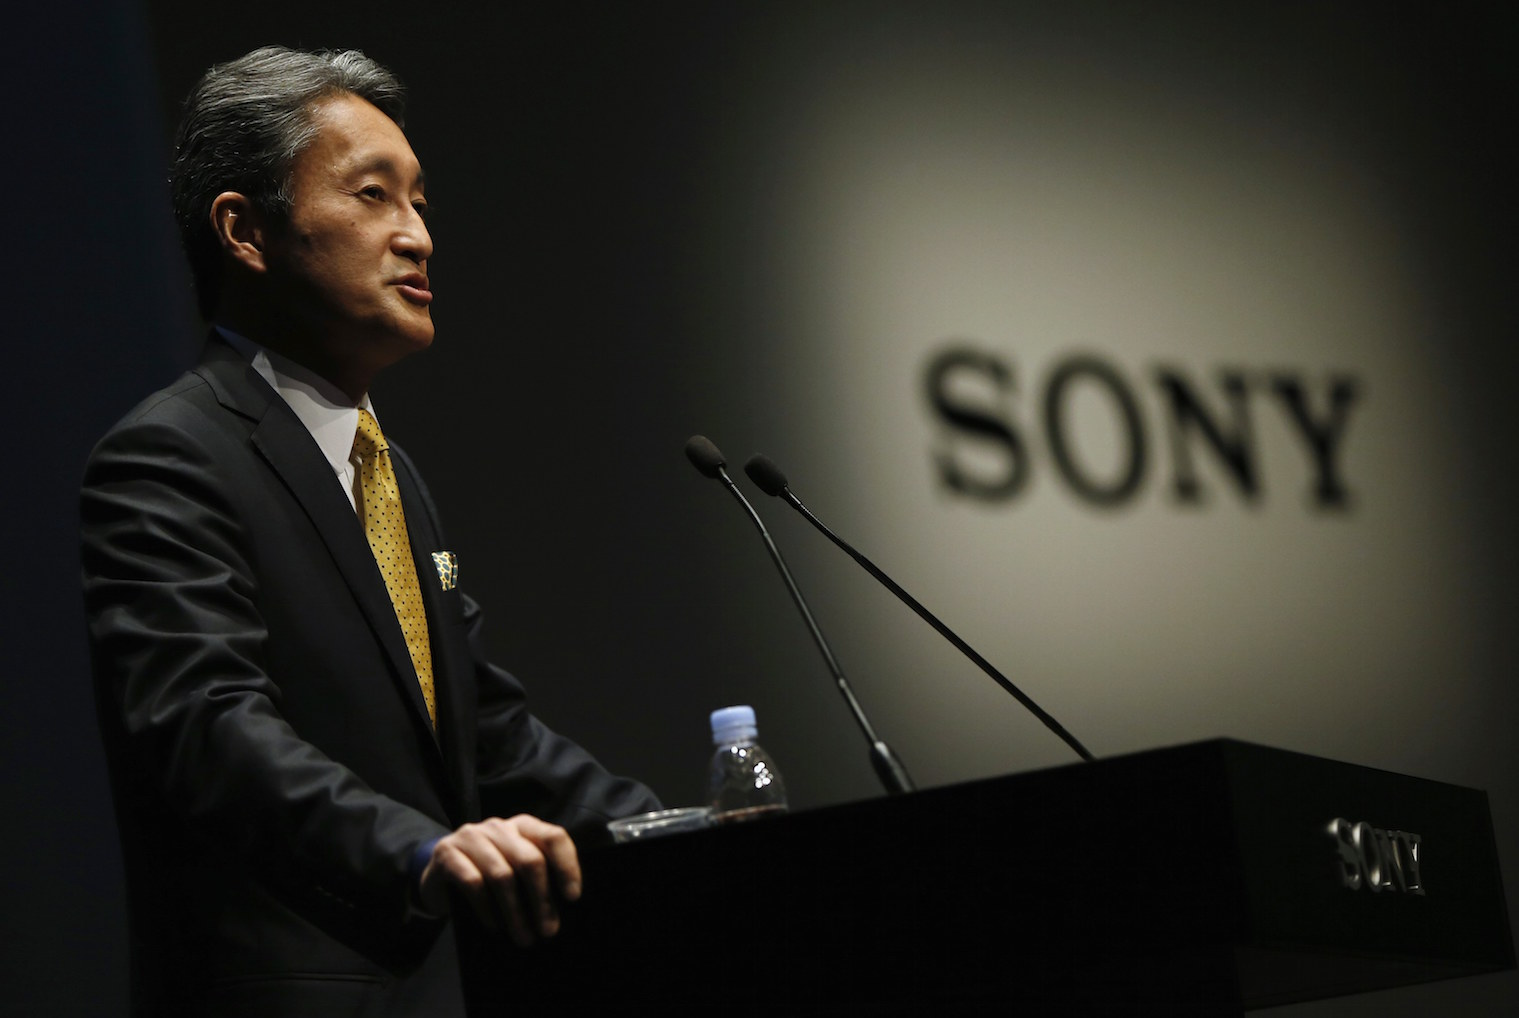 Sony net profit soars in April-June quarter